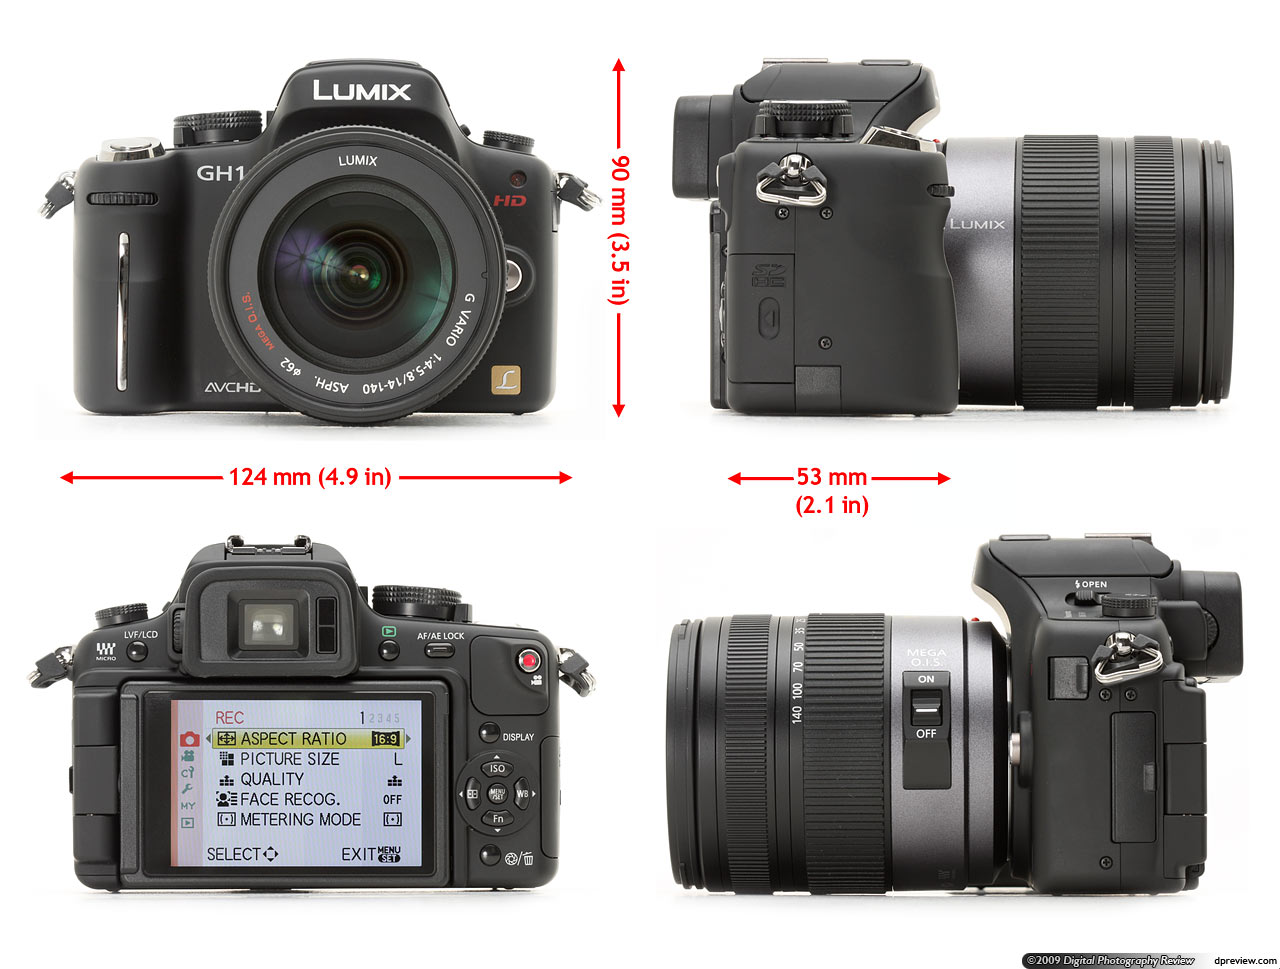 panasonic lumix dmc gh1 review digital photography review. Black Bedroom Furniture Sets. Home Design Ideas